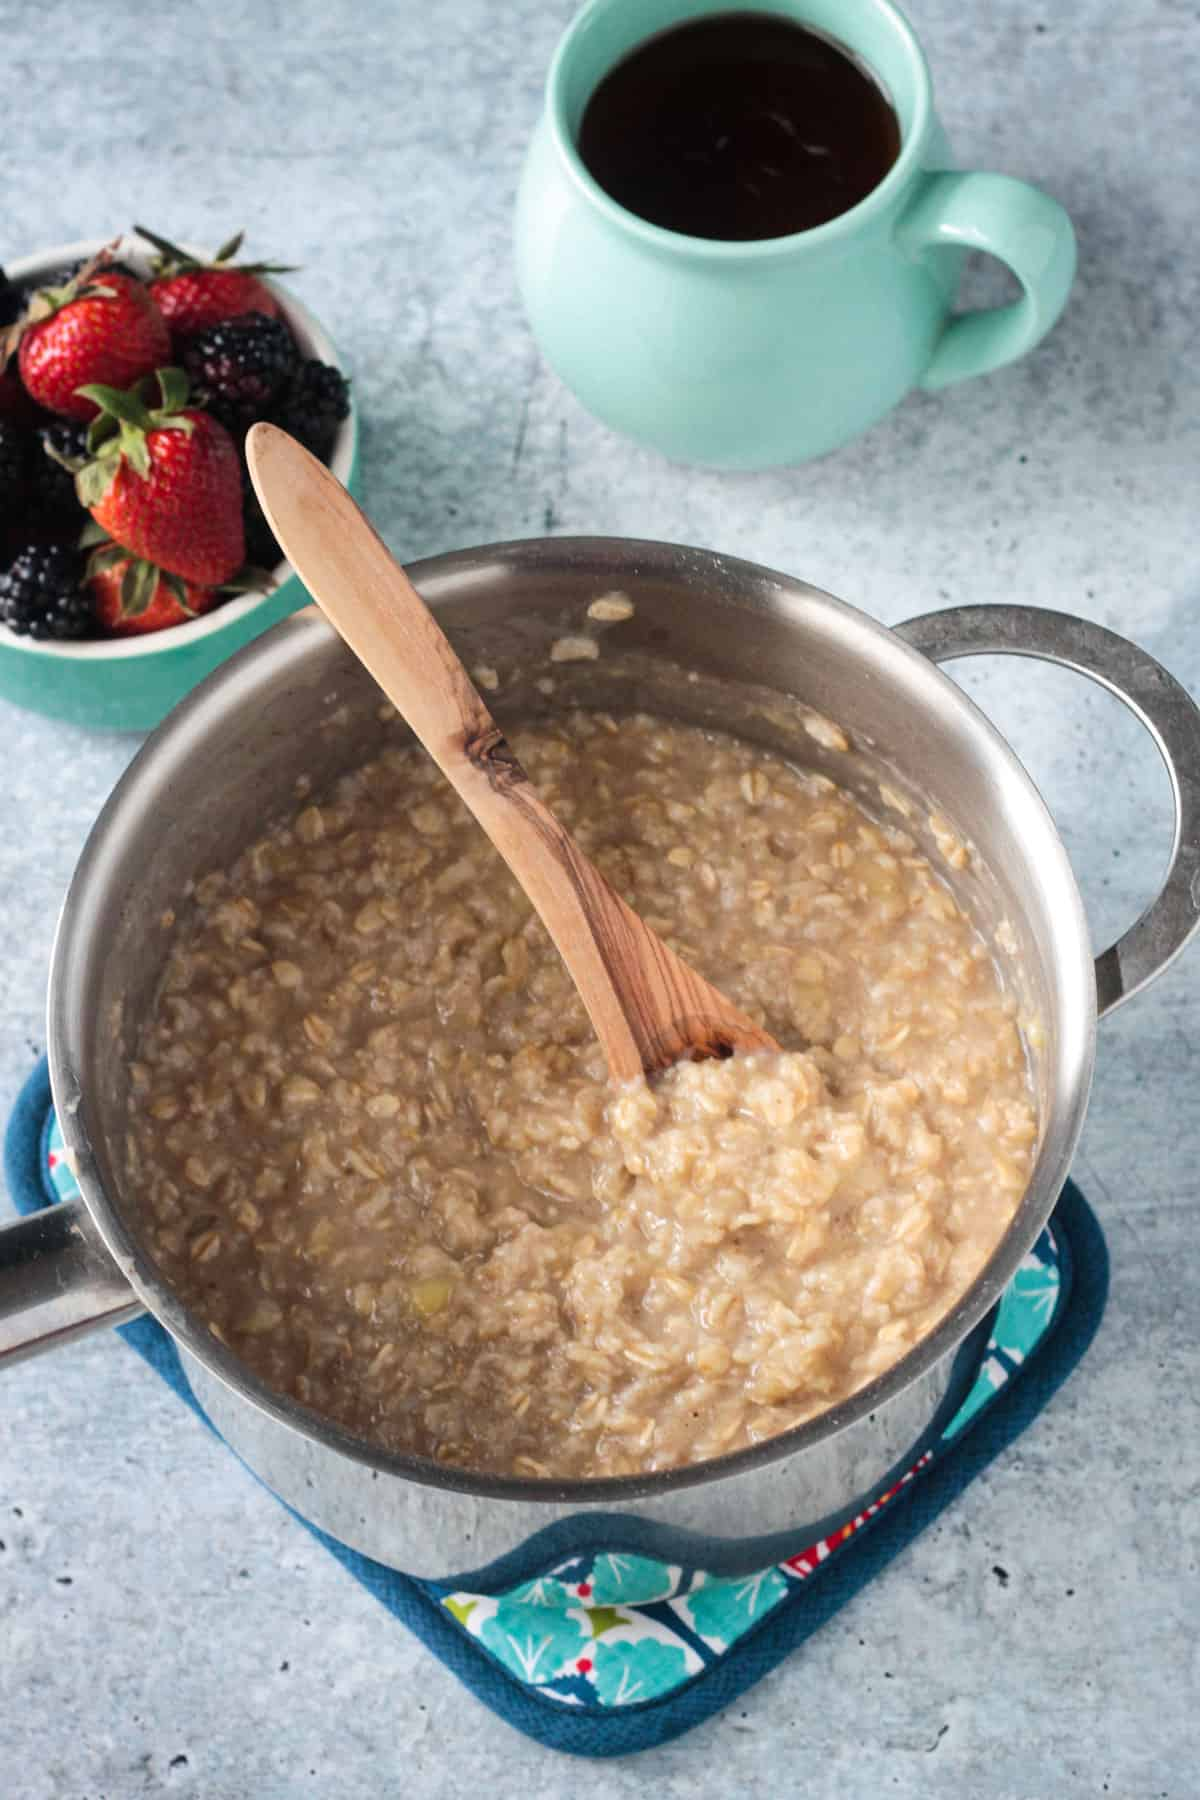 A wooden spoon stirring a pot of creamy oatmeal.